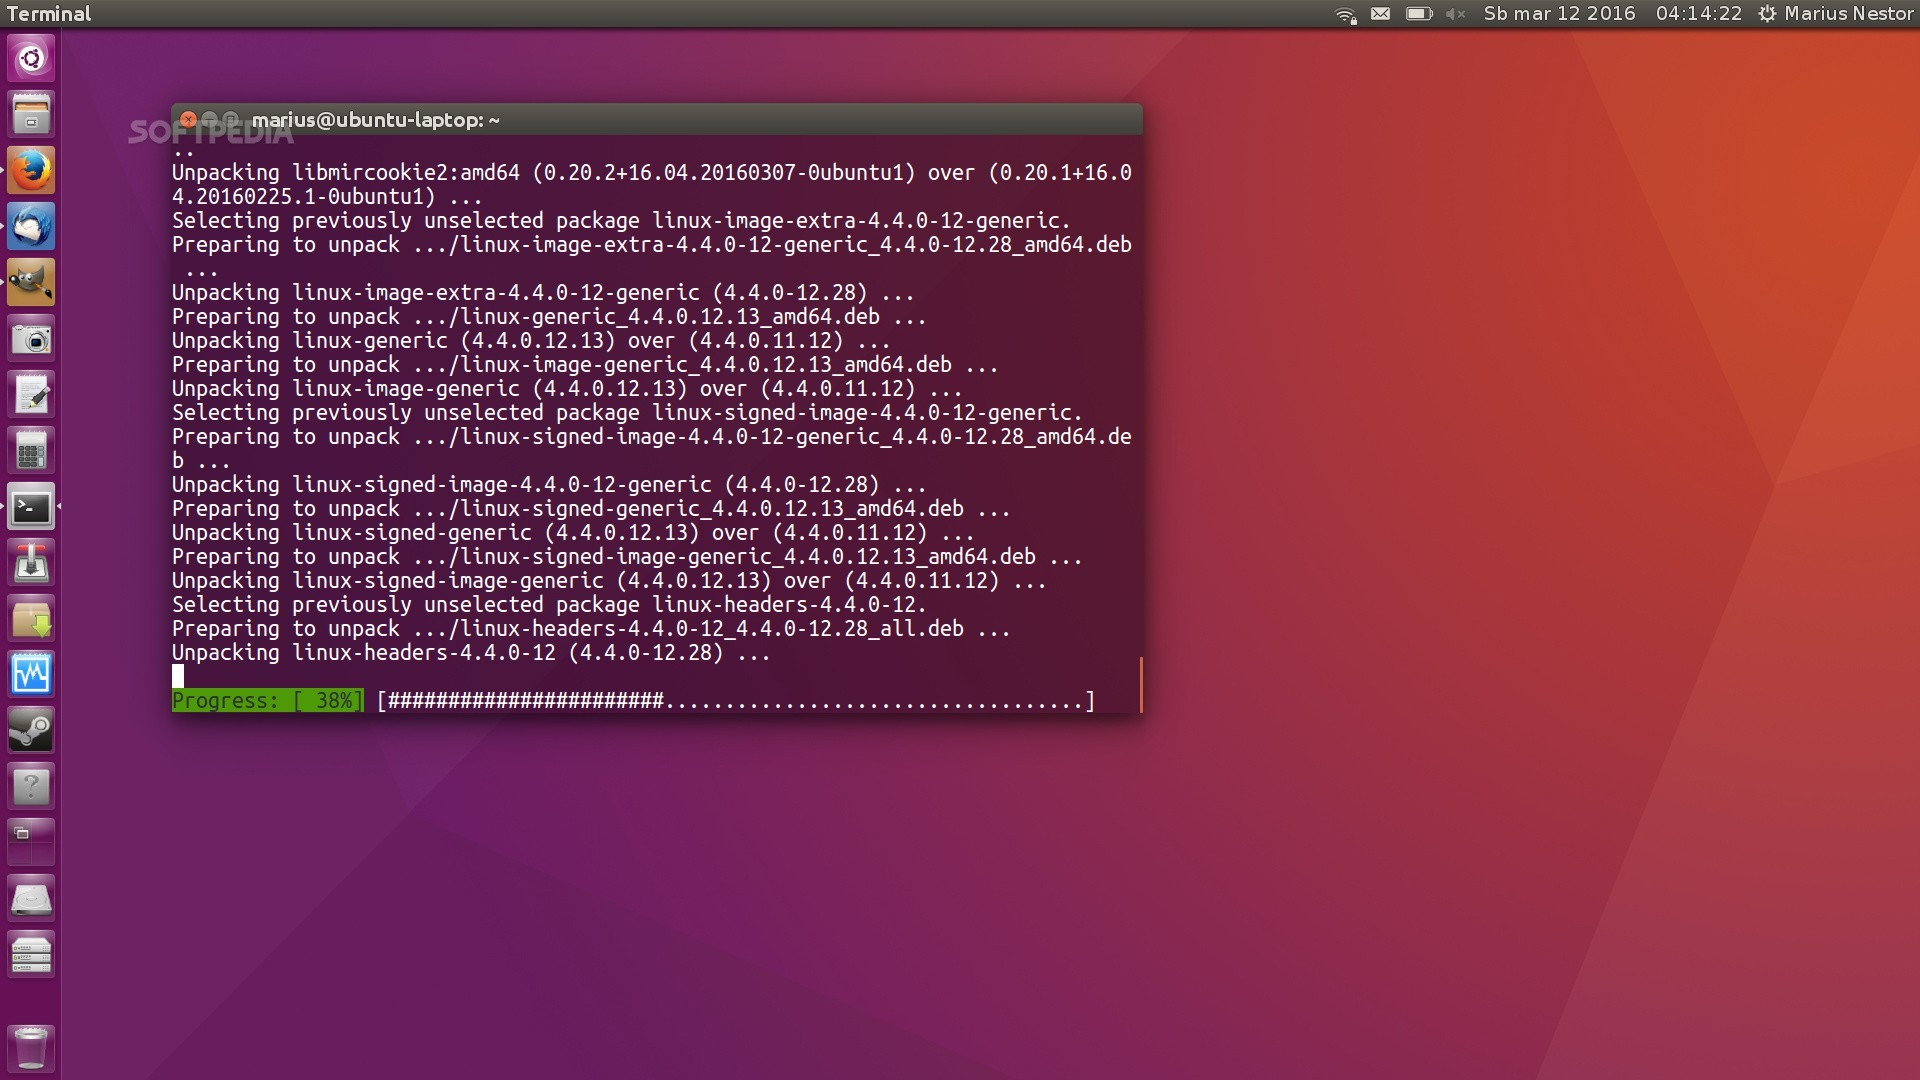 ubuntu-16-04-lts-now-ships-with-linux-kernel-4-4-4-lts-launches-april-21-2016-501644-2